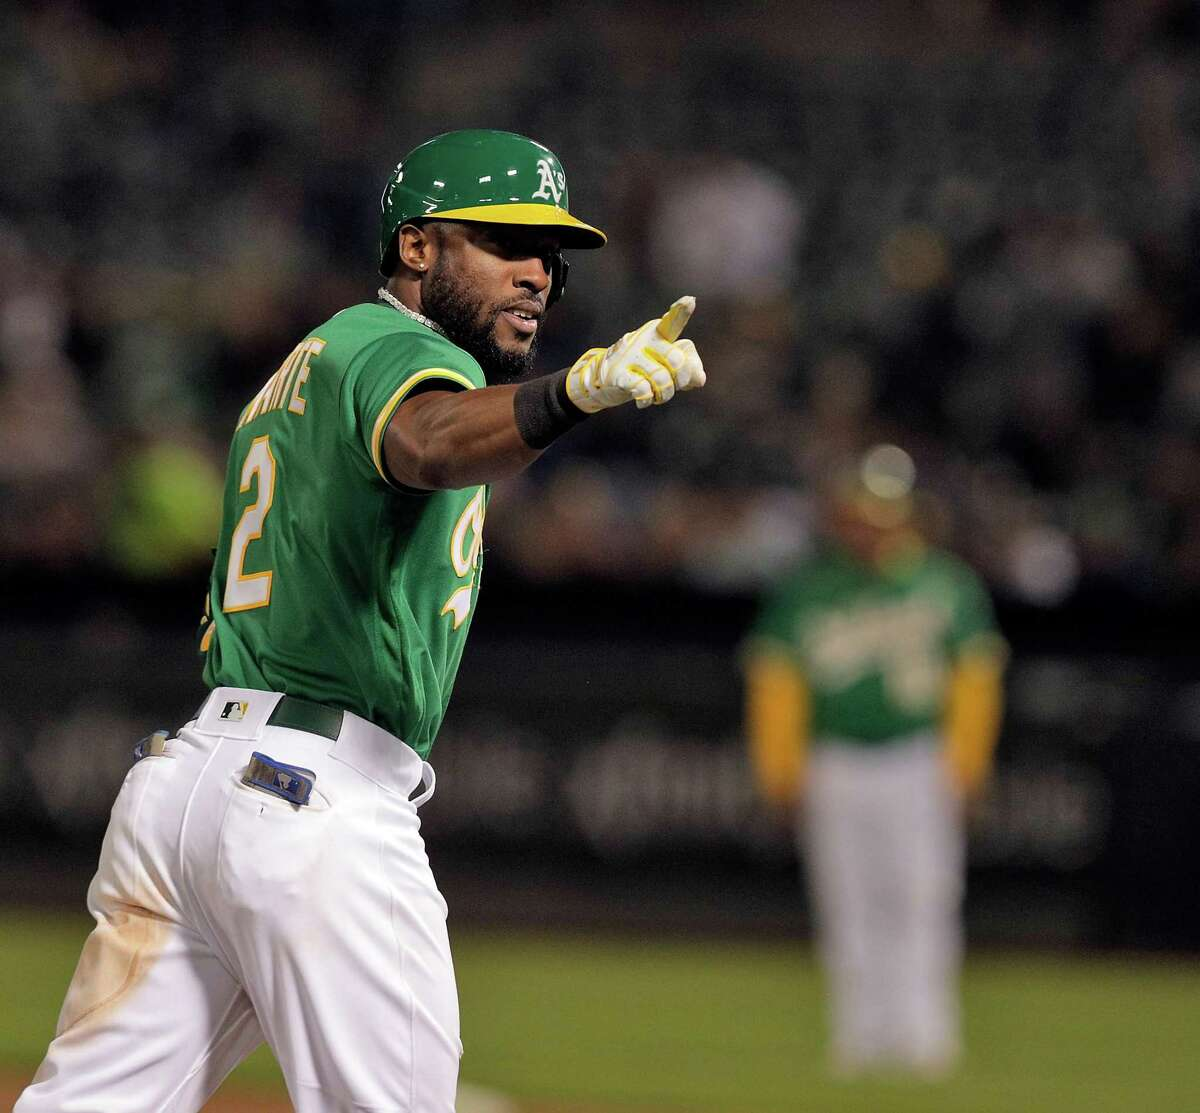 Starling Marte (2) points to the dugout after hitting a solo homerun in the fifth inning as the Oakland Athletics played the San Diego Padres at the Coliseum in Oakland, Calif., on Tuesday, August 3, 2021.